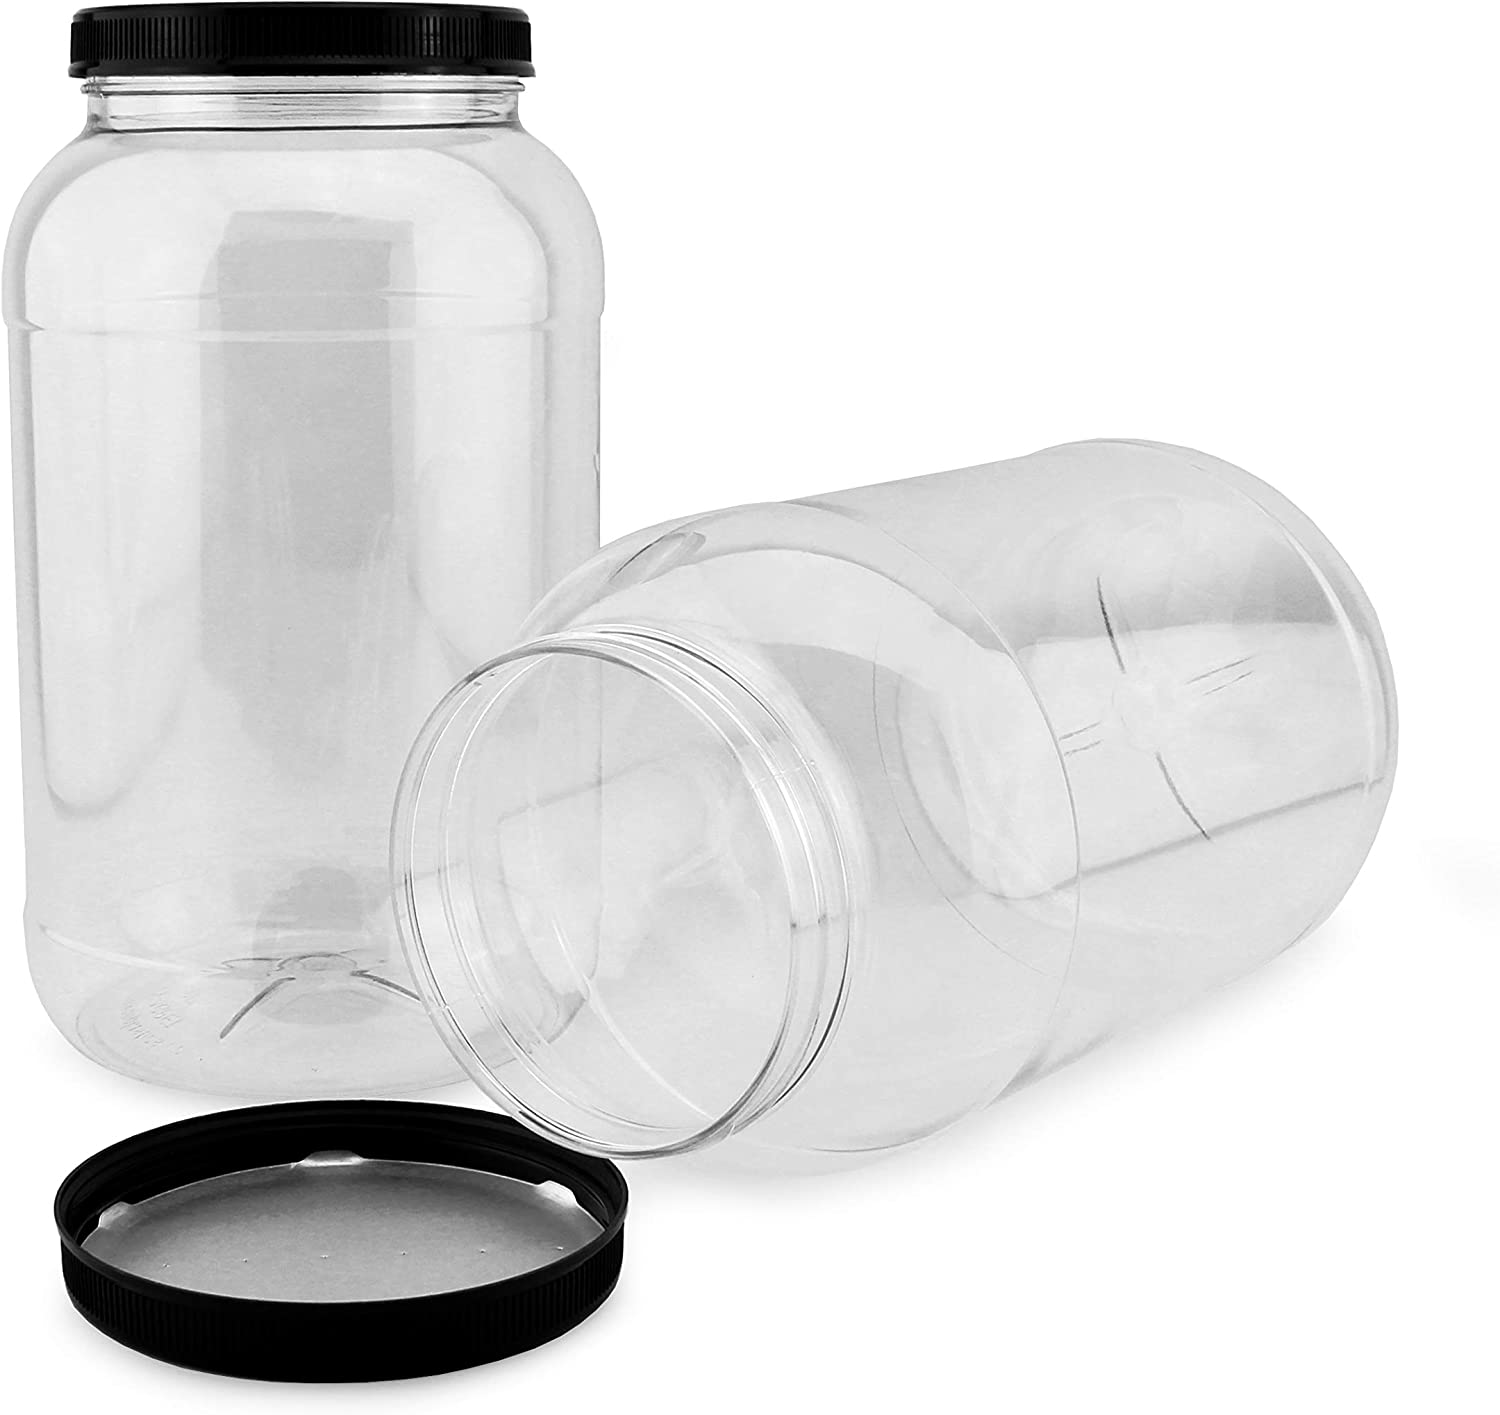 6 Pack 4 oz  Clear Round Wide Mouth Plastic Jars With Black Lid BPA FREE